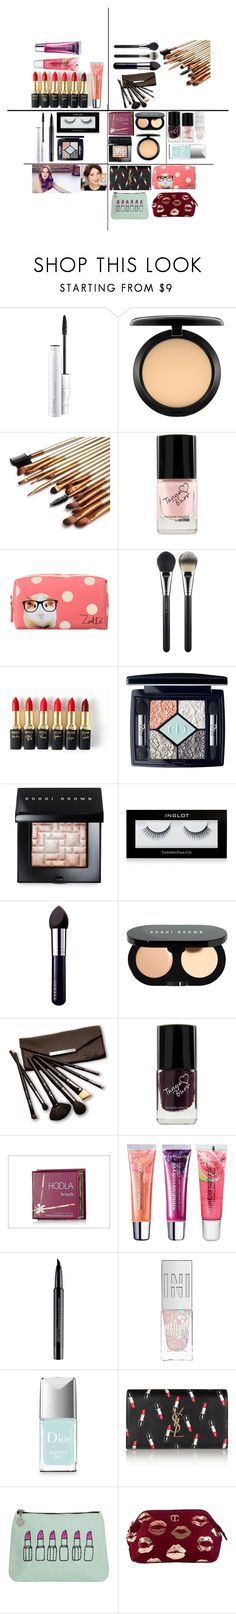 """""""Categories: Lip makeup, brushes, eye makeup, face makeup,  nail polish, makeup bags and zoella and tanya burr!"""" by makeup-and-fashion-loverr ❤ liked on Polyvore featuring beauty, MAC Cosmetics, L'Oréal Paris, Christian Dior, Bobbi Brown Cosmetics, Inglot, By Terry, Borghese, Benefit and Maybelline"""